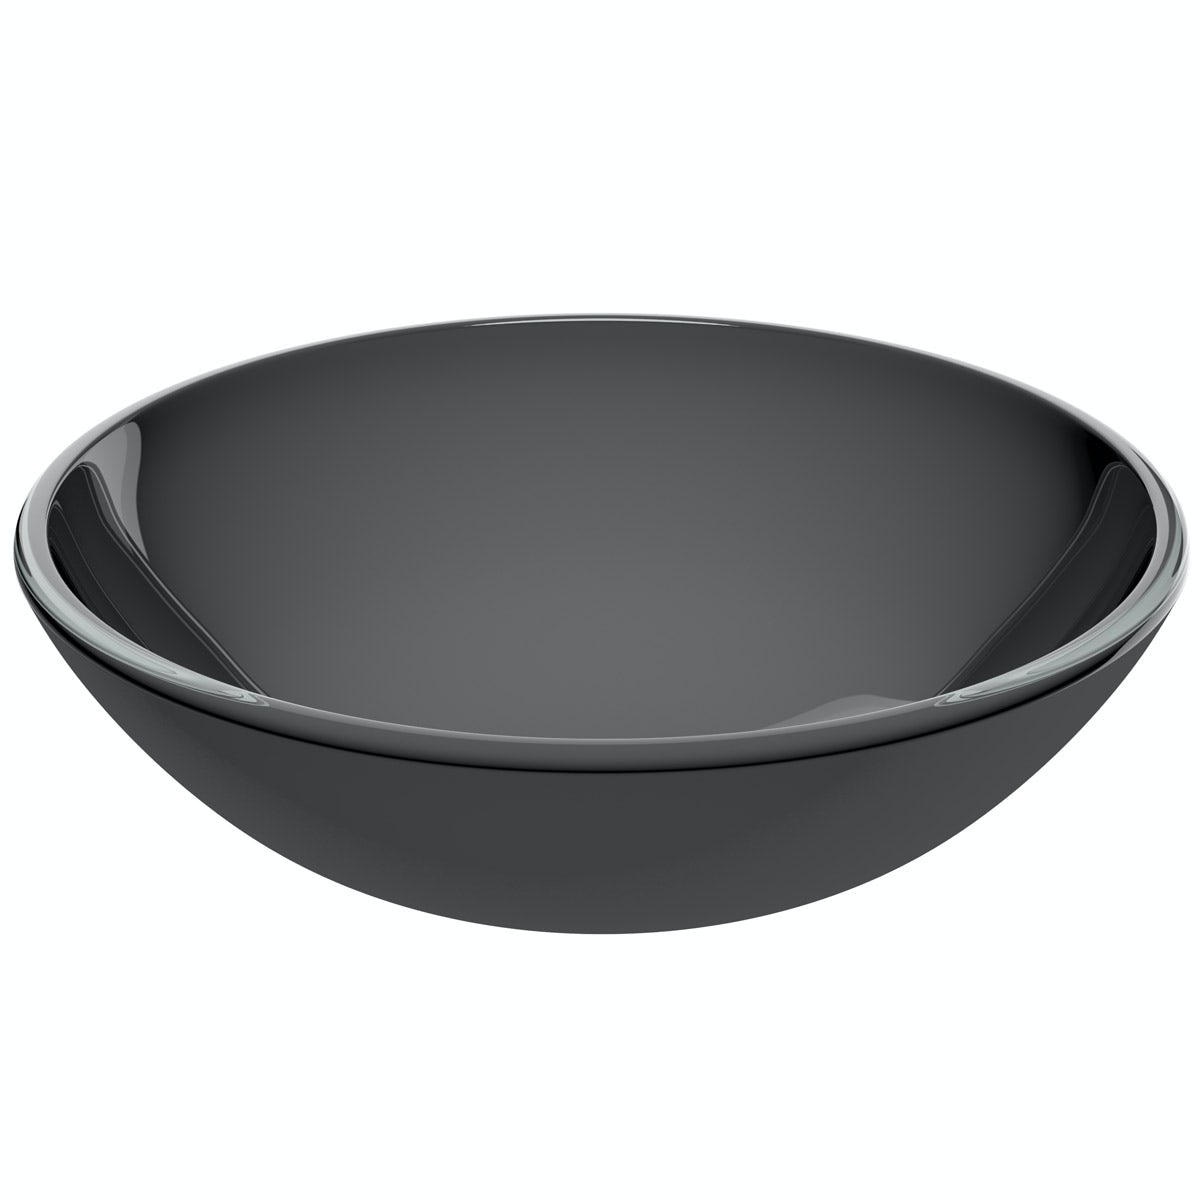 Mode Mackintosh painted black glass countertop basin